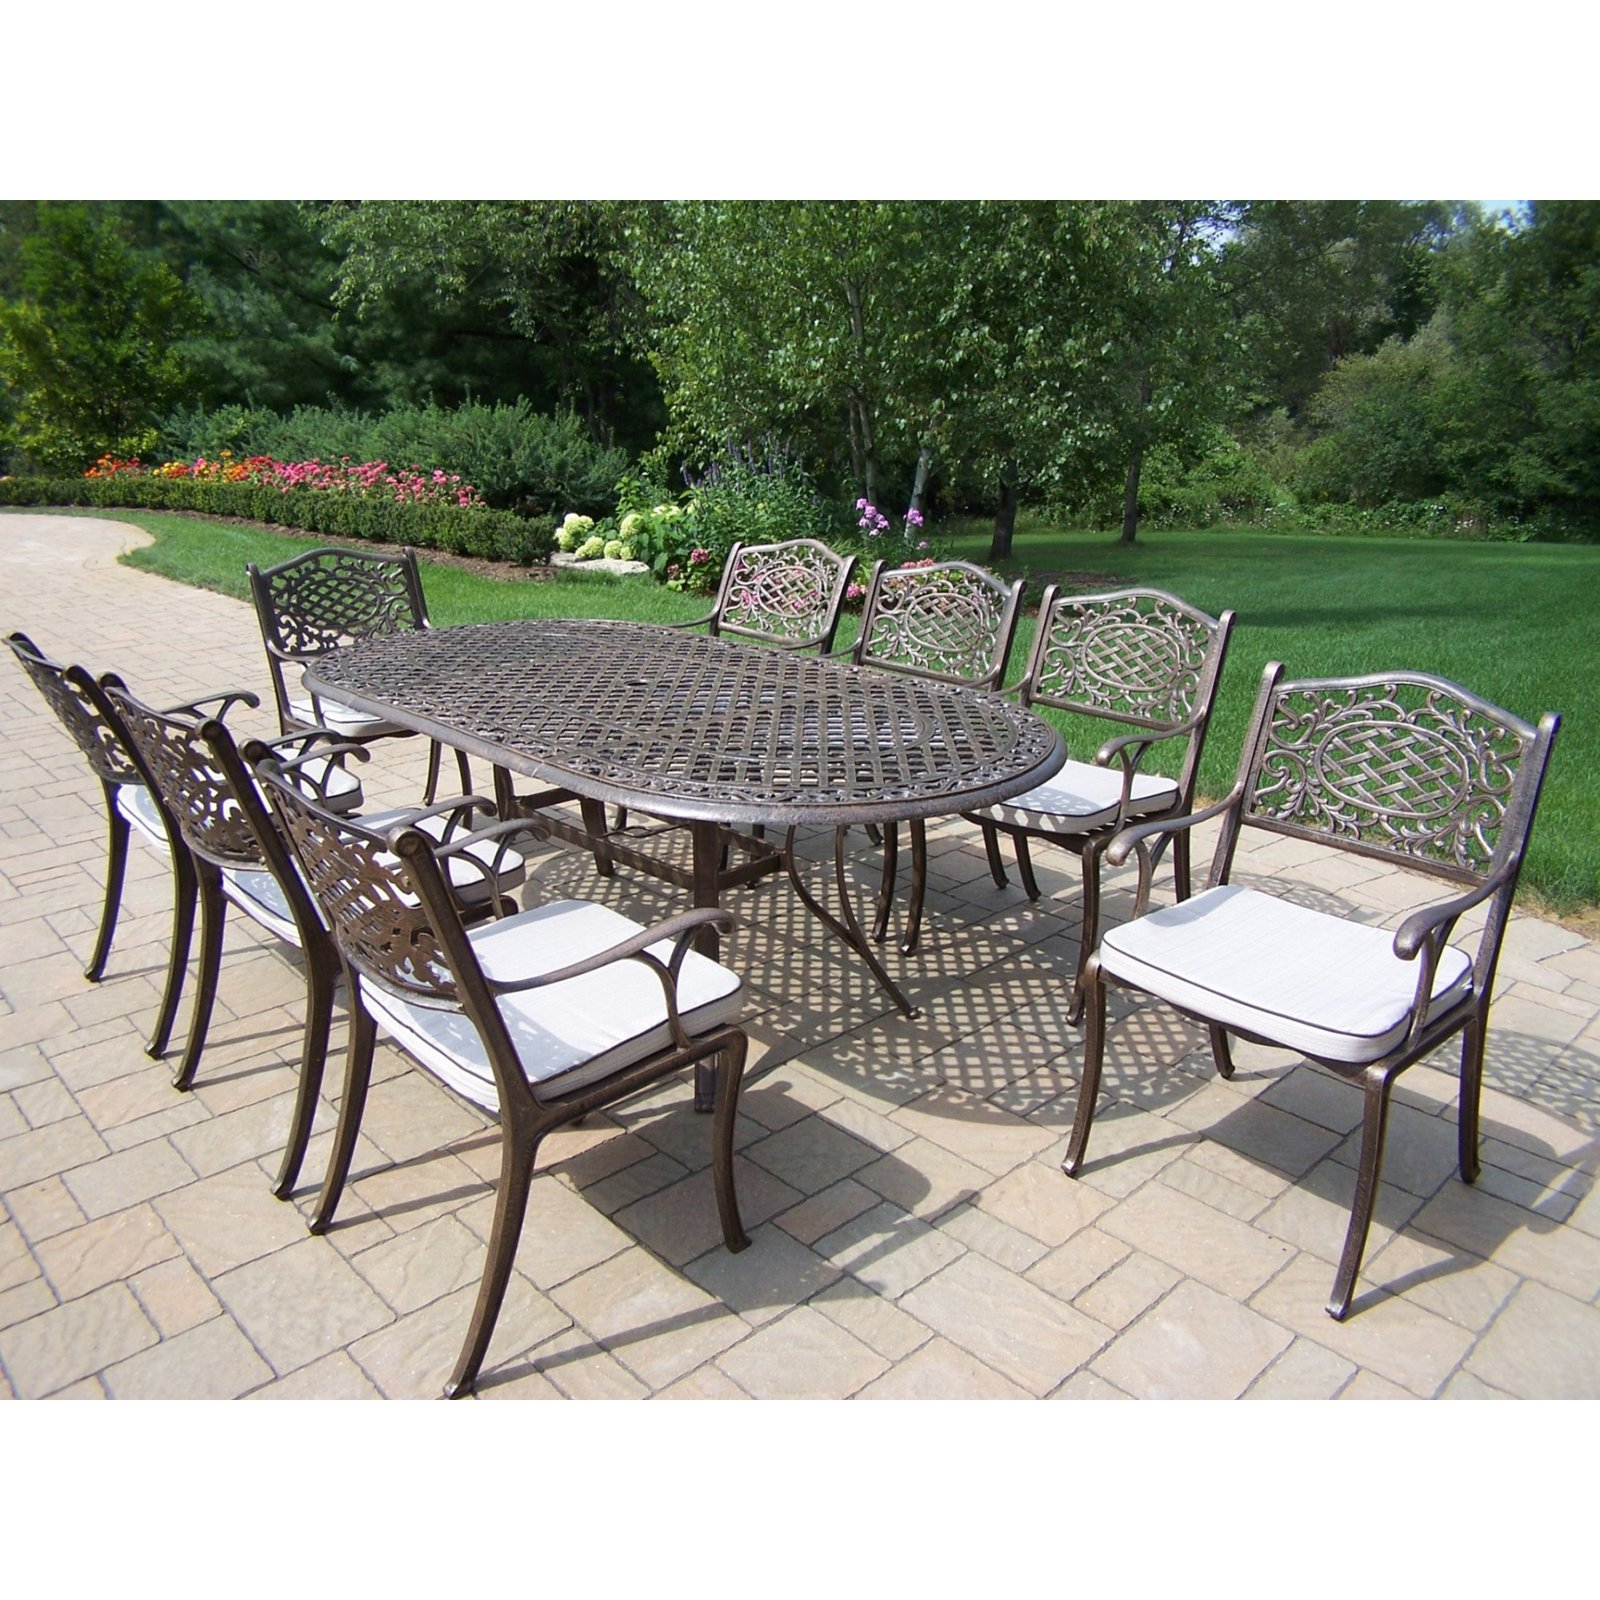 Oakland Living Mississippi Cast Aluminum 82 x 42 in. Oval Patio Dining Set - Seats 8